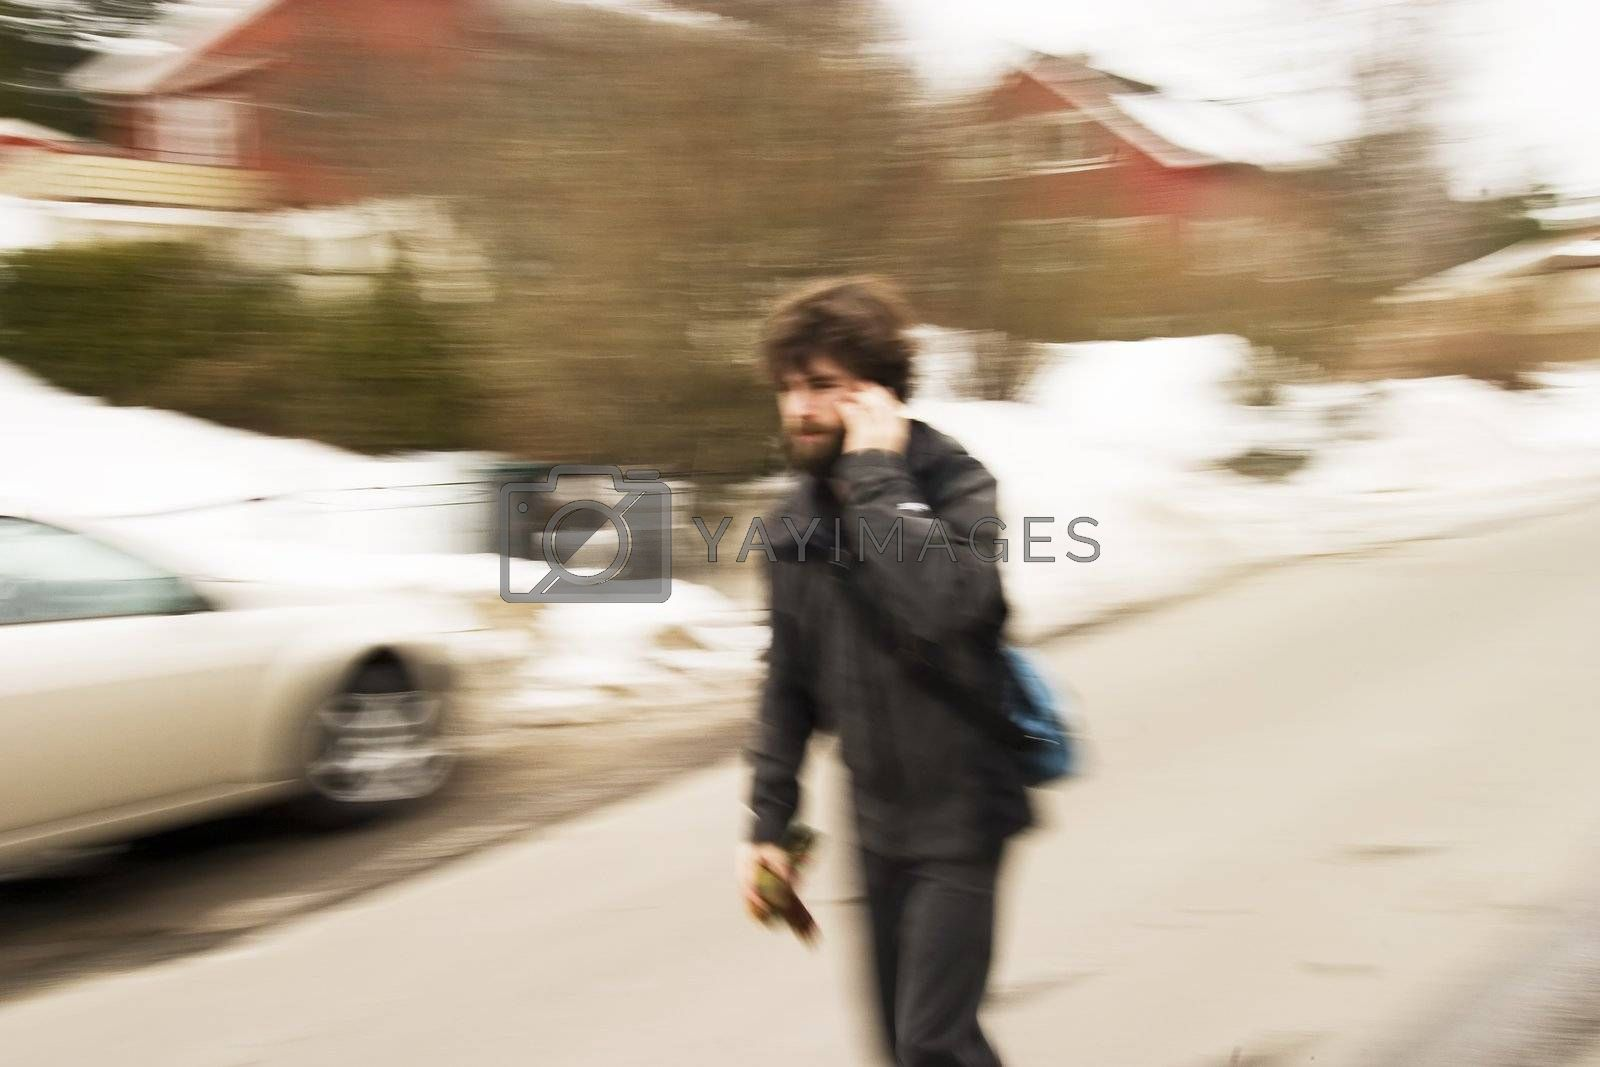 A motion blur abstract of a person walking in a hurry talking on a cell phone, a late rushing concept image.